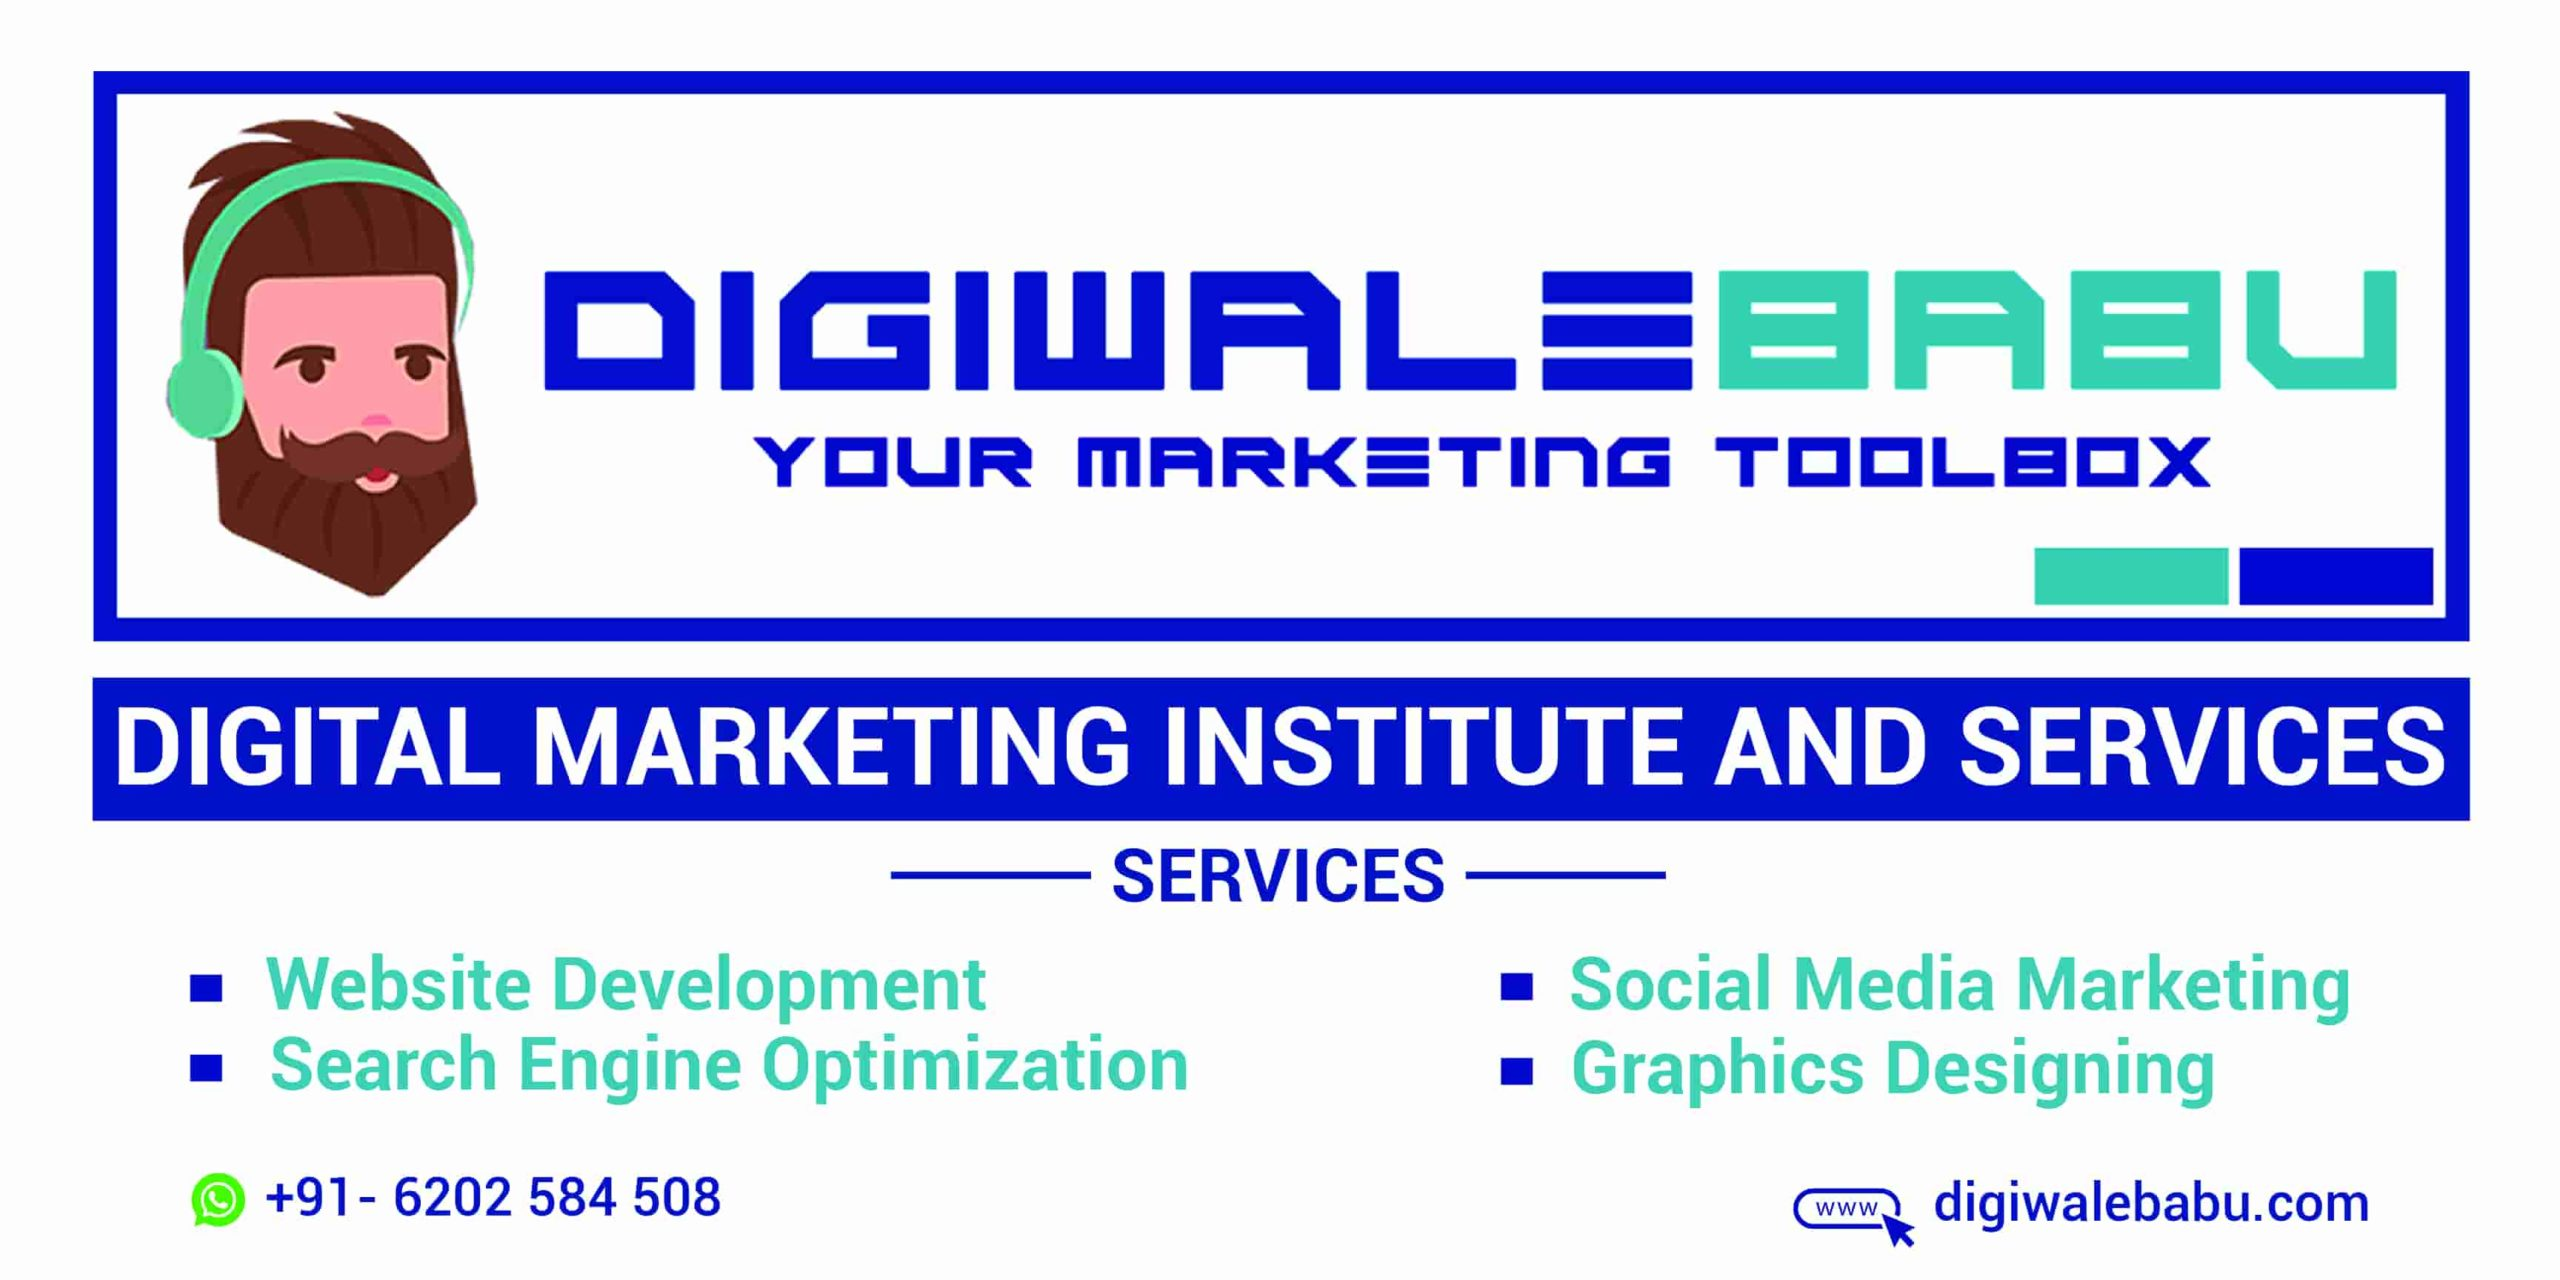 DIGITAL MARKETING INSTITUTE AND SERVICE